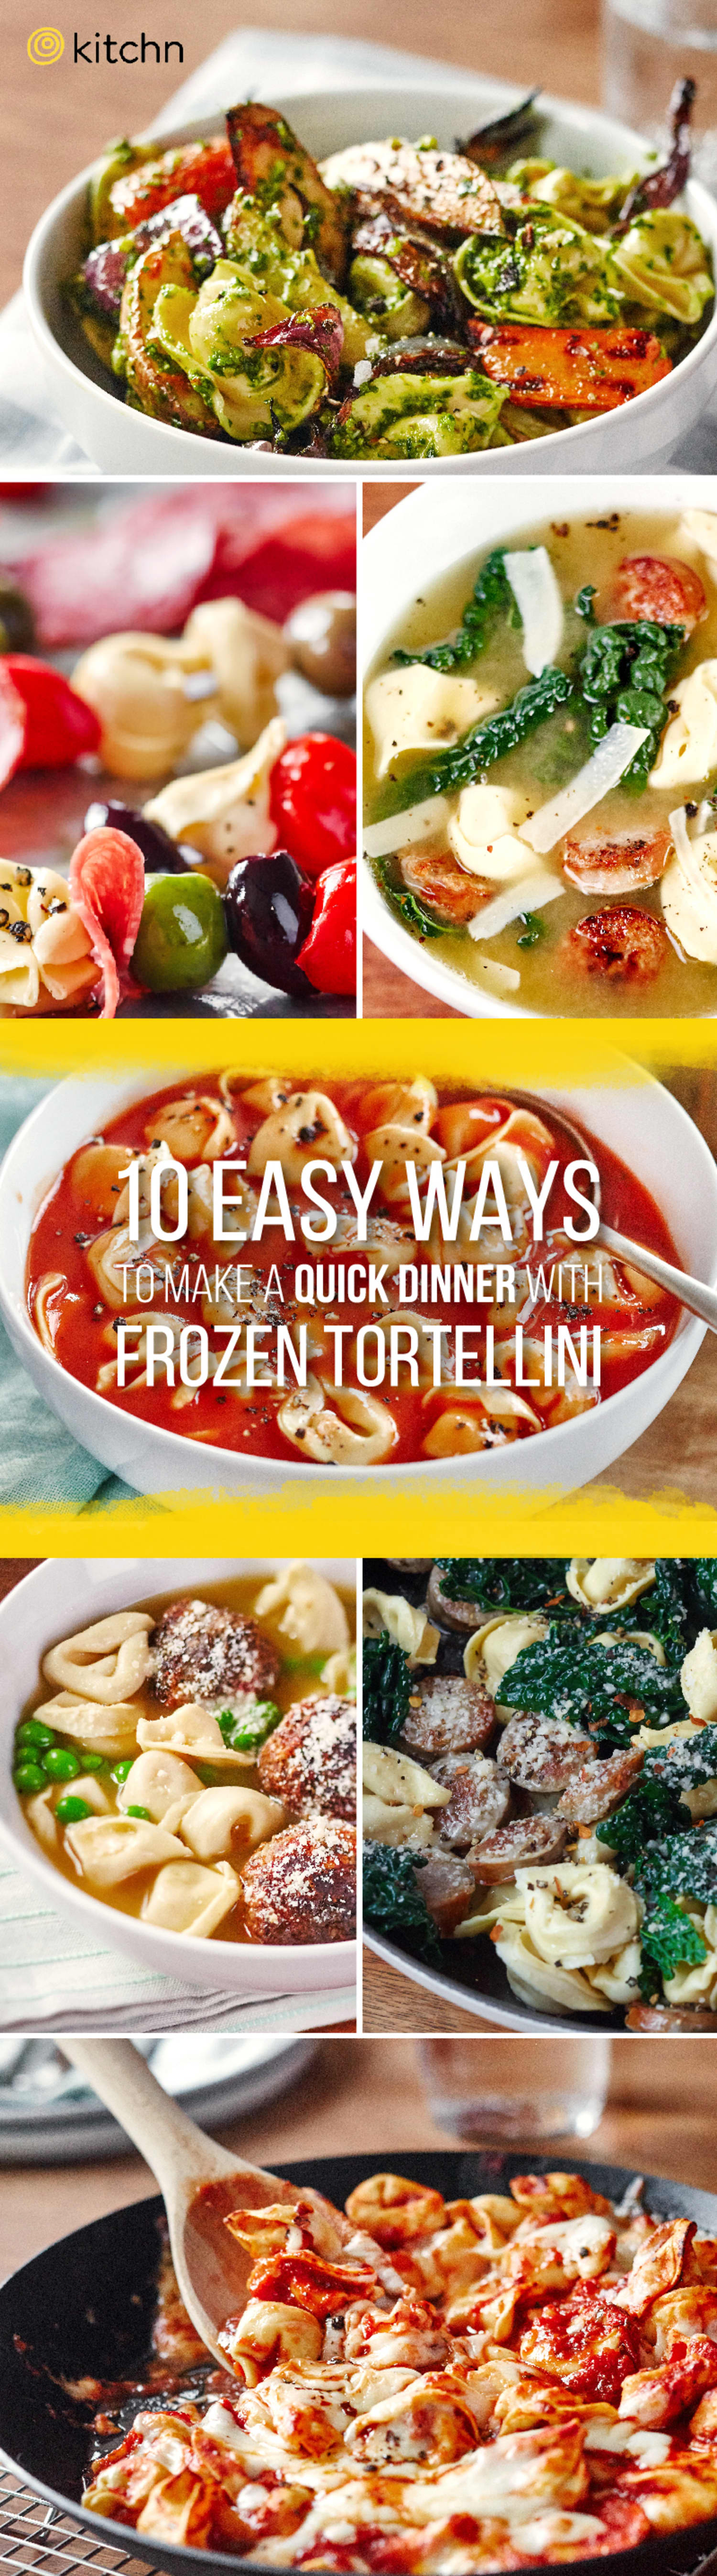 The Frozen Tortellini Feast: 10 Ways to Turn This Freezer Staple into Dinner